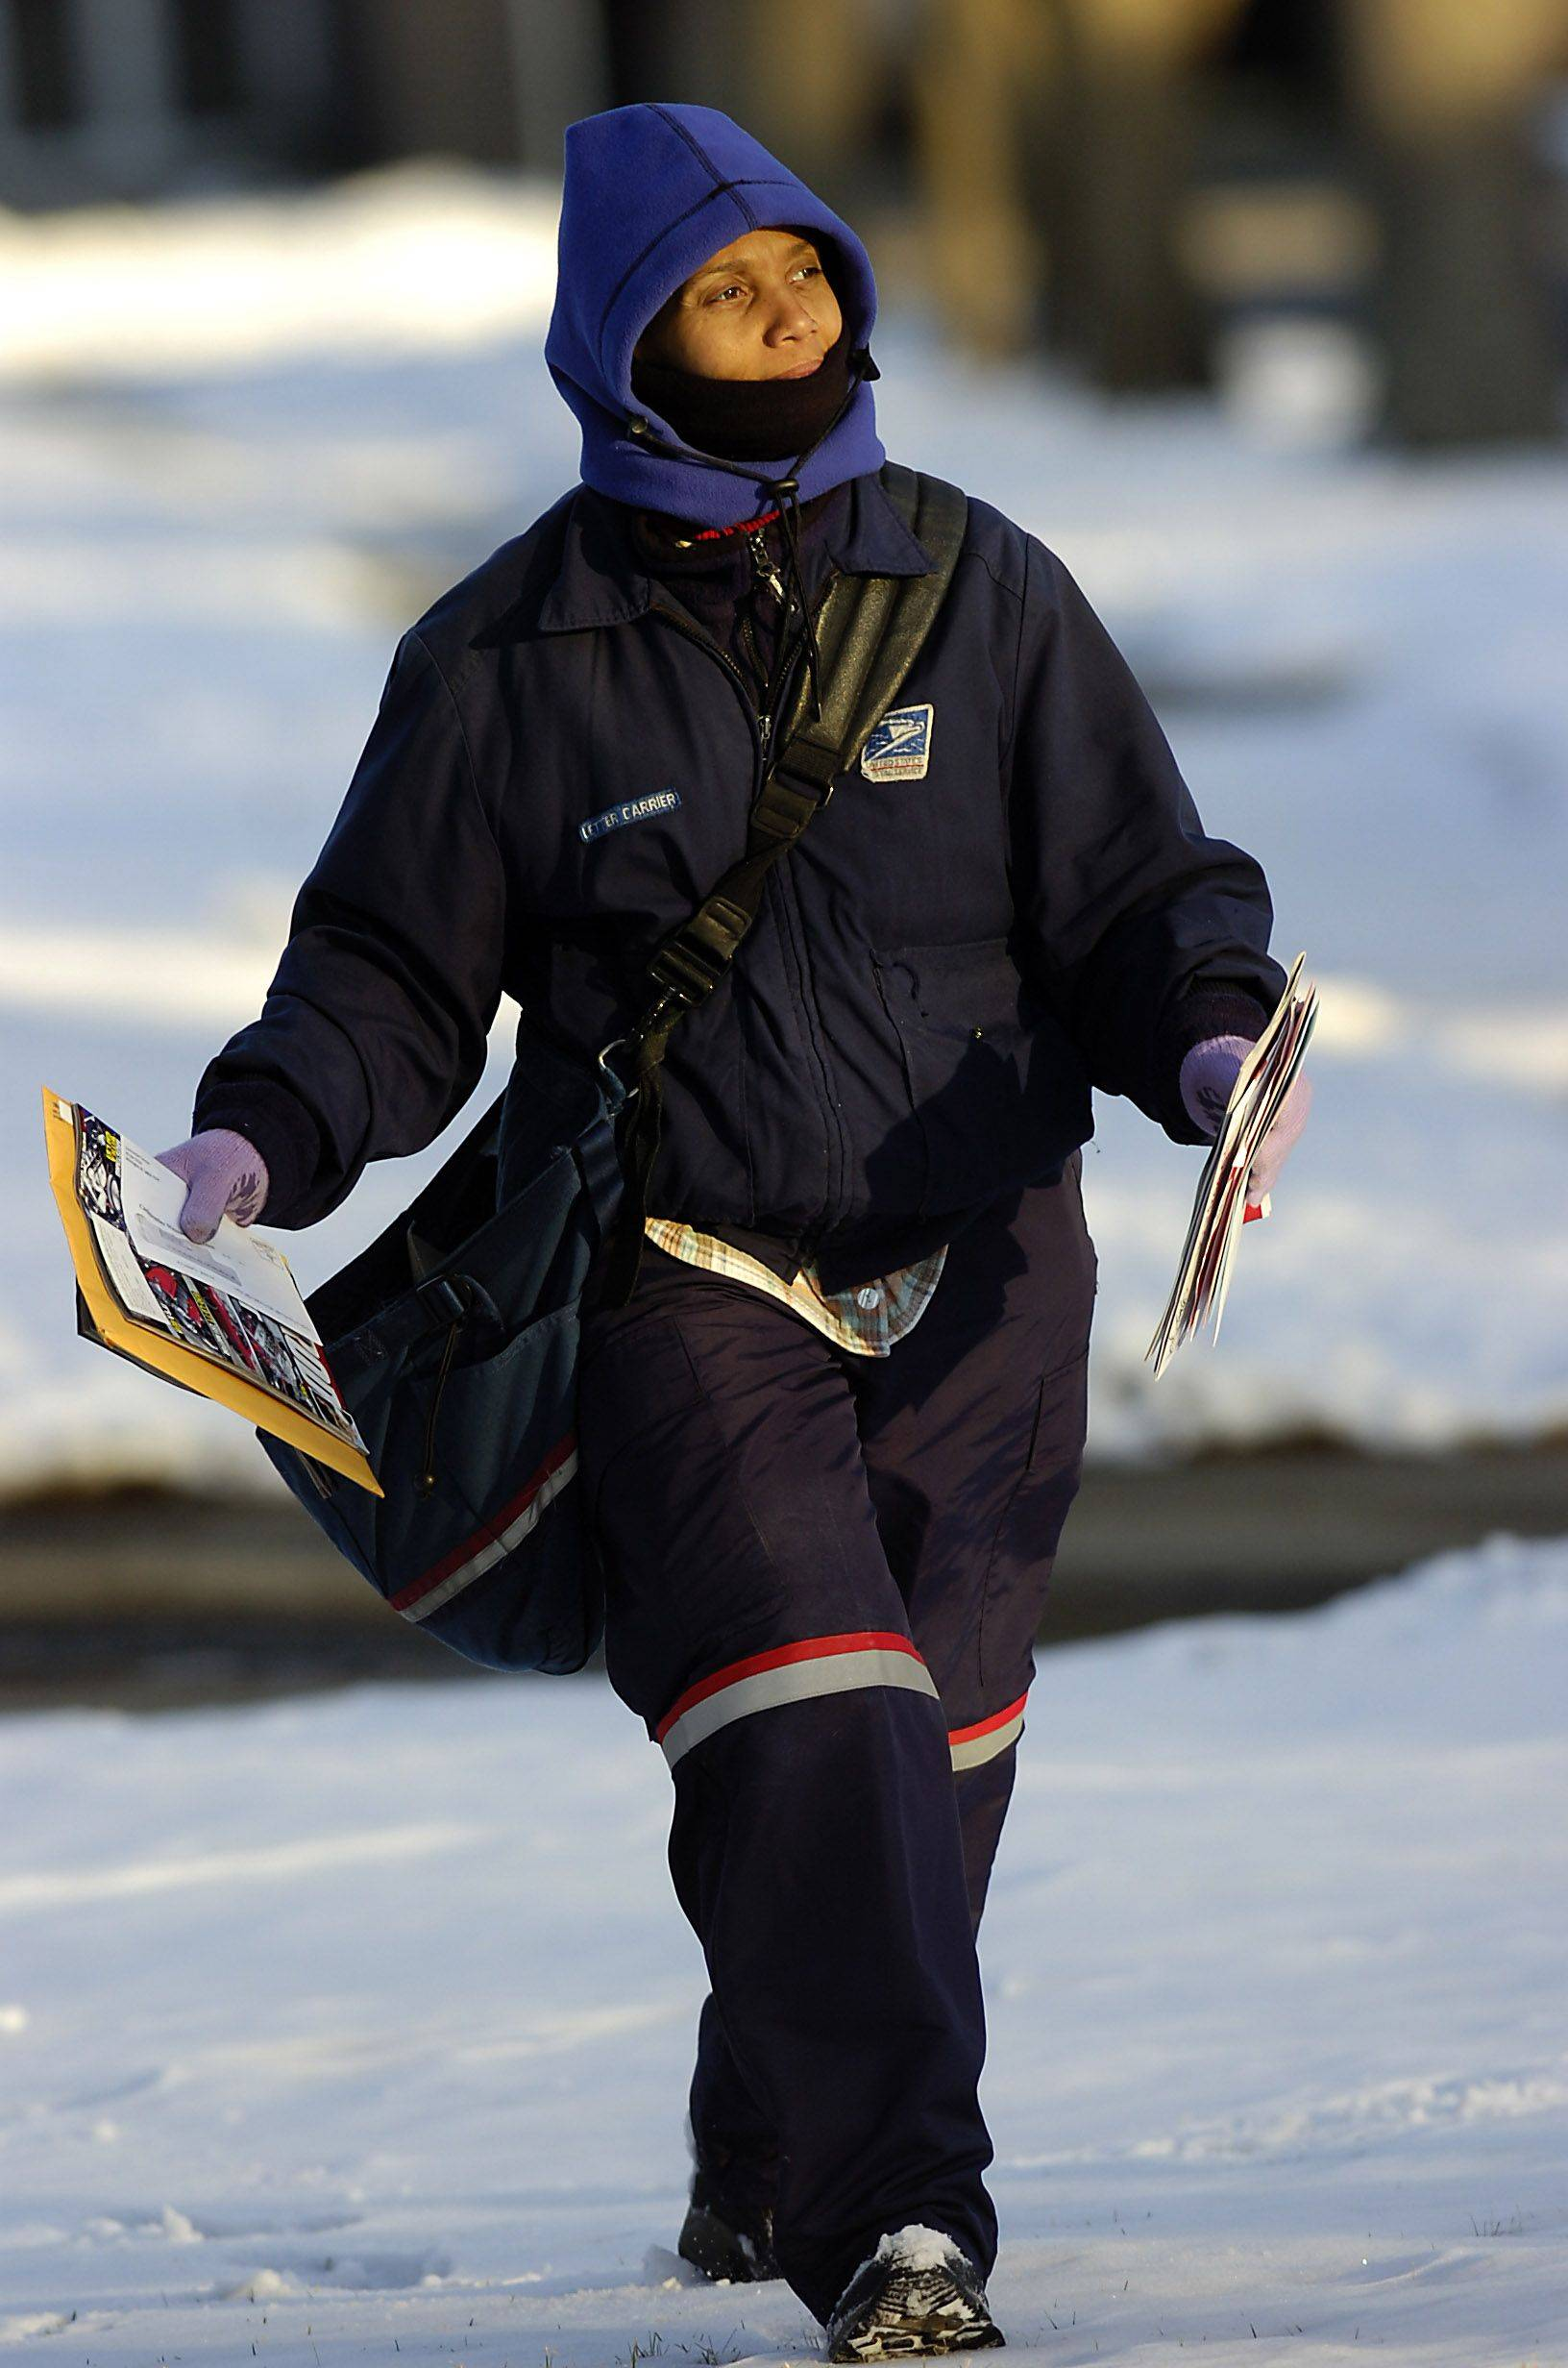 Antoinette Schaffer of Chicago delivers mail in Palatine, dressed in warm gear as she carries up to 70 pounds of mail during her route. She not only delivers the mail but also delivers smiles to all on her route with her good-natured spirit and laughter.